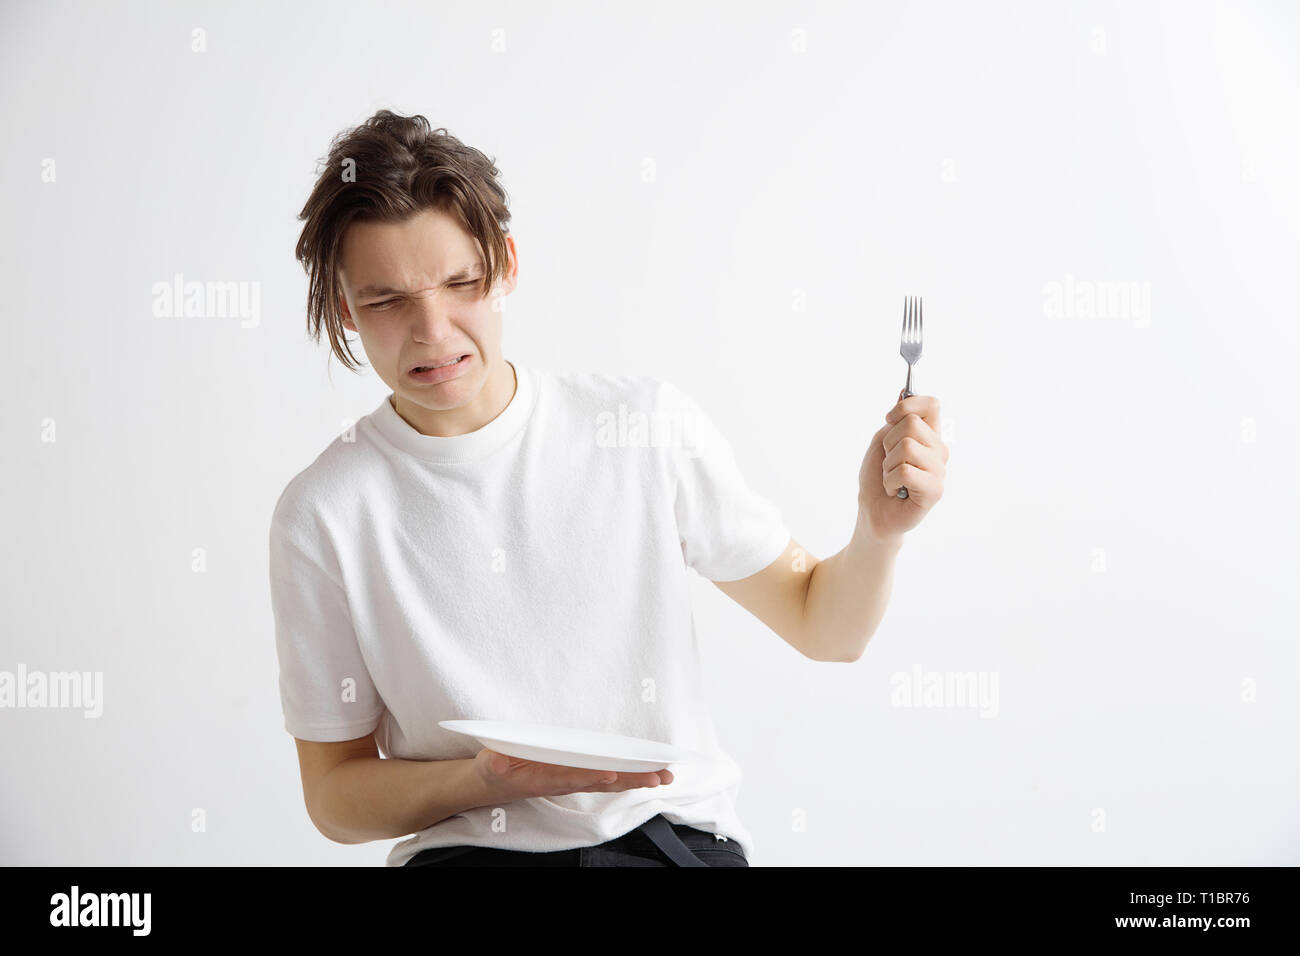 Young sad attractive caucasian guy holding empty dish and fork isolated on grey background. Copy space and mock up. Blank template background. Reject, rejection concept - Stock Image